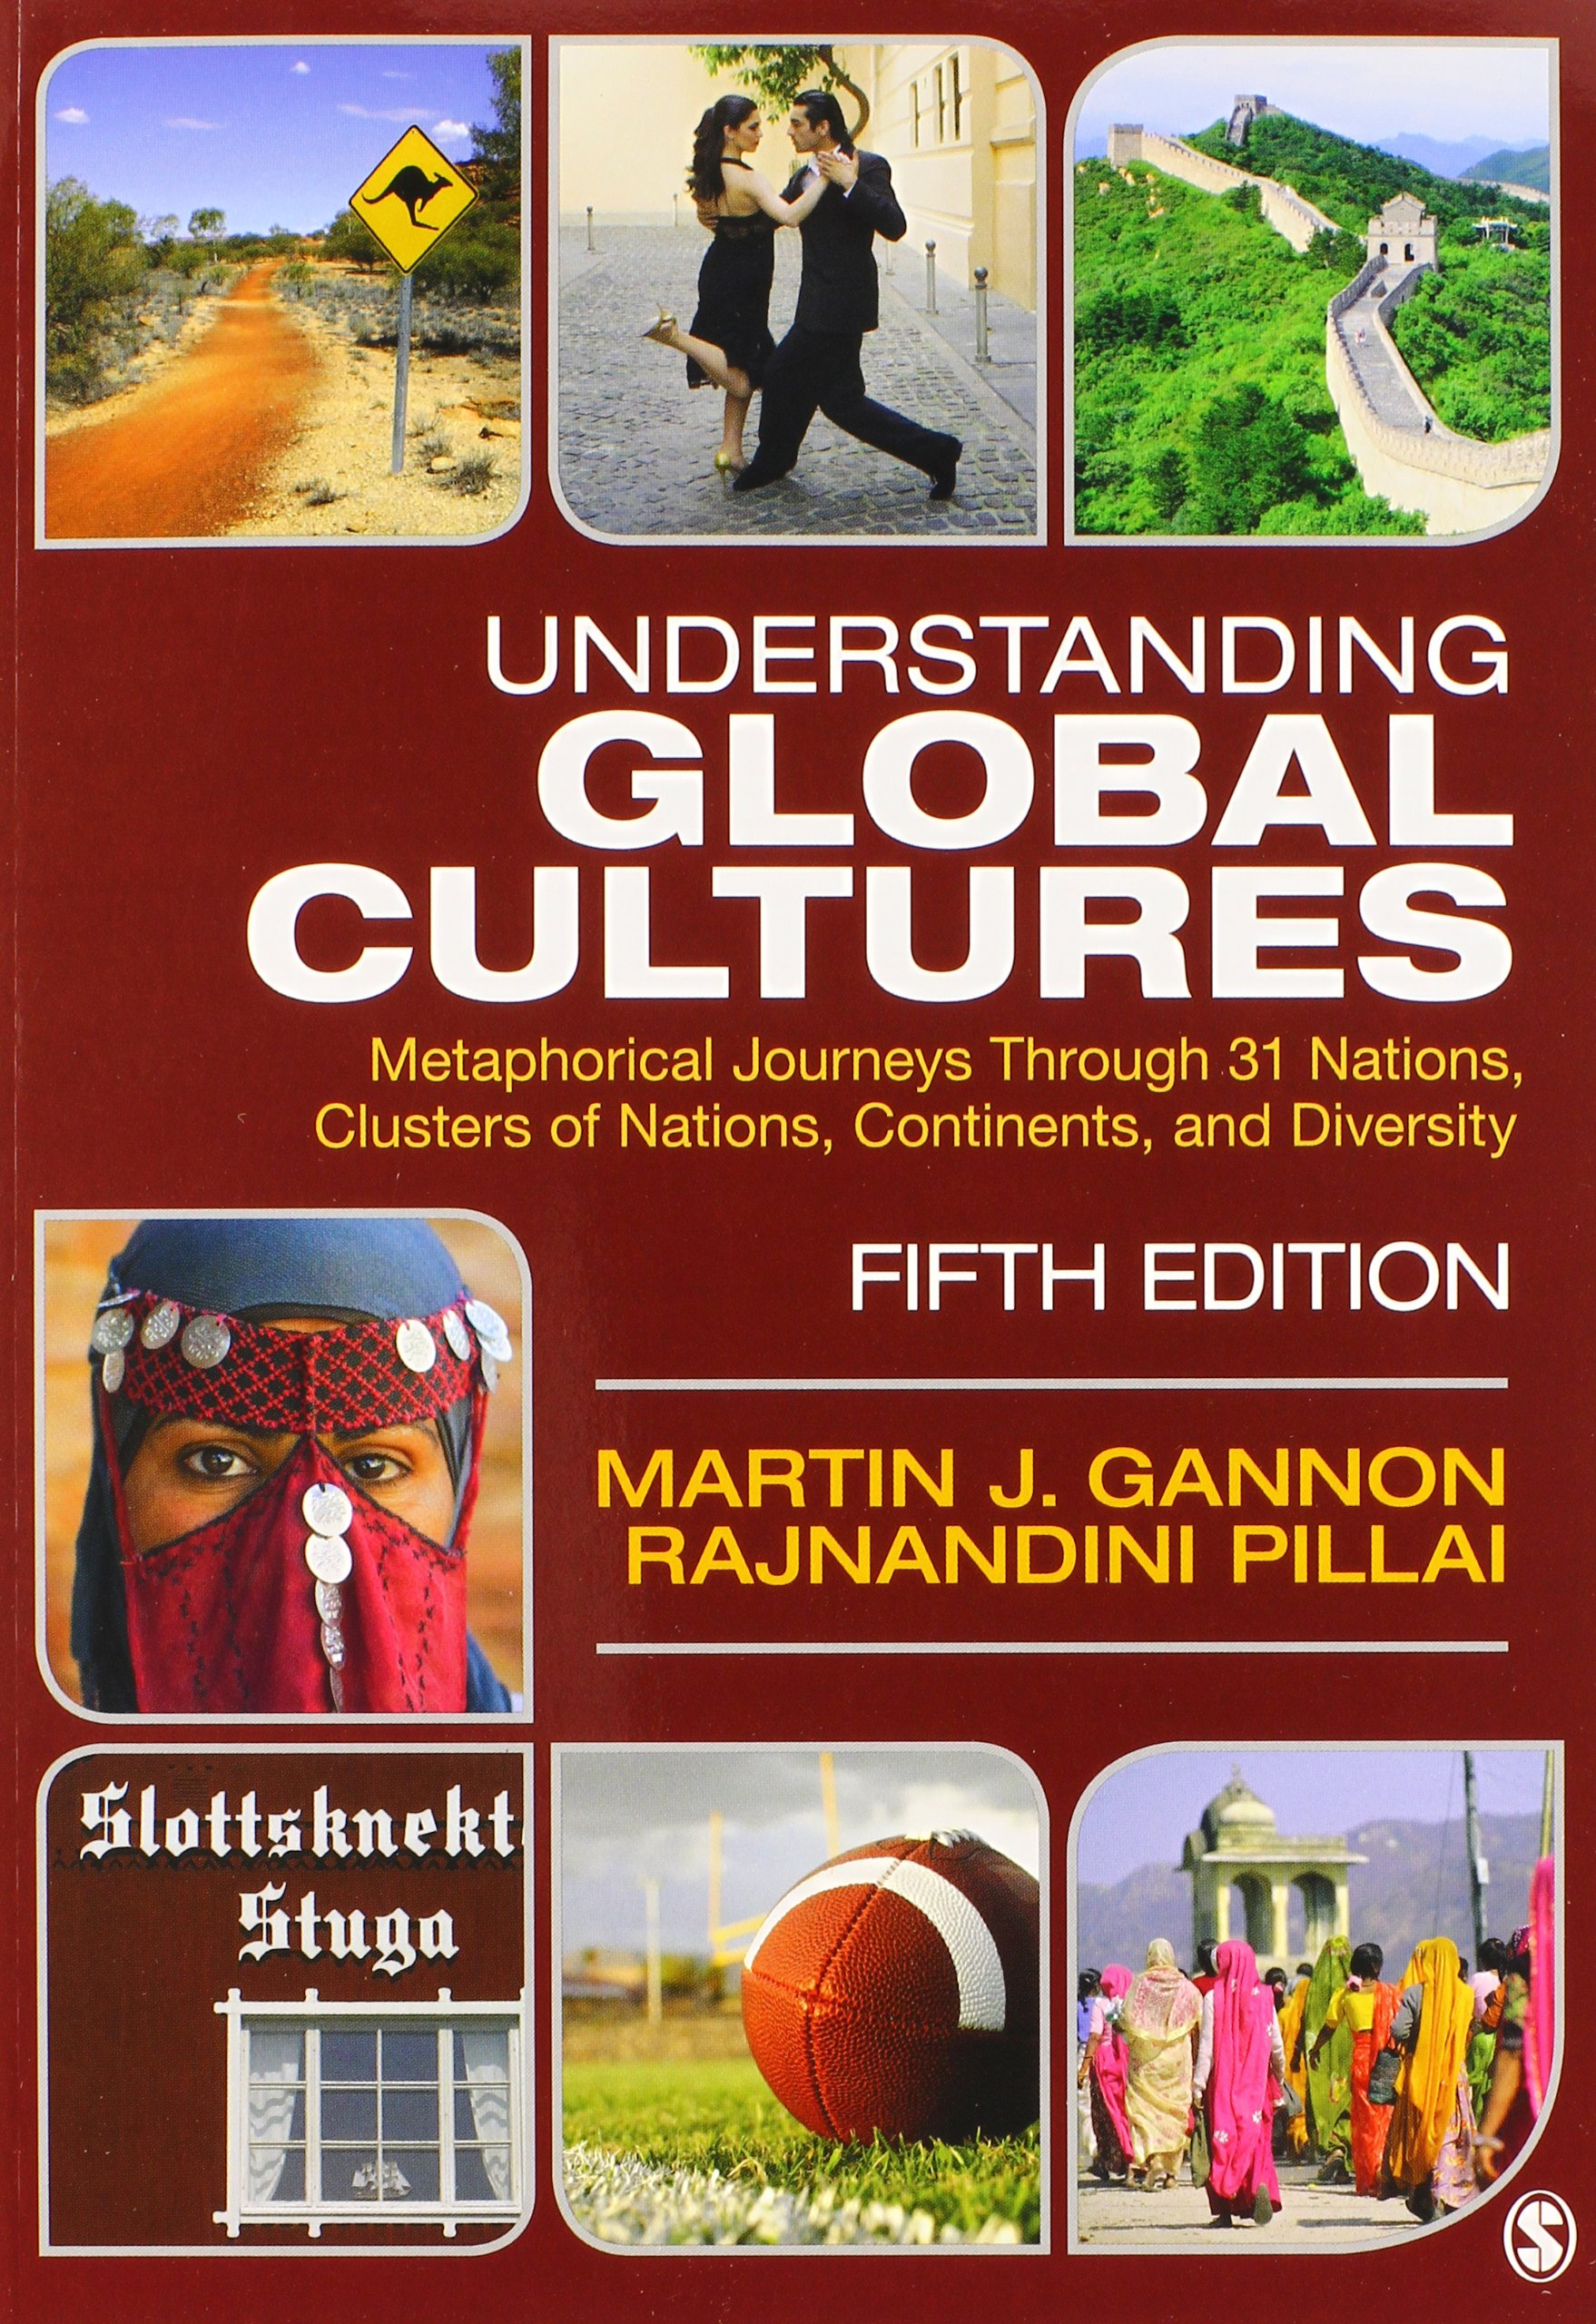 Understanding Global Cultures: Metaphorical Journeys Through 28 Nations, Third Edition.